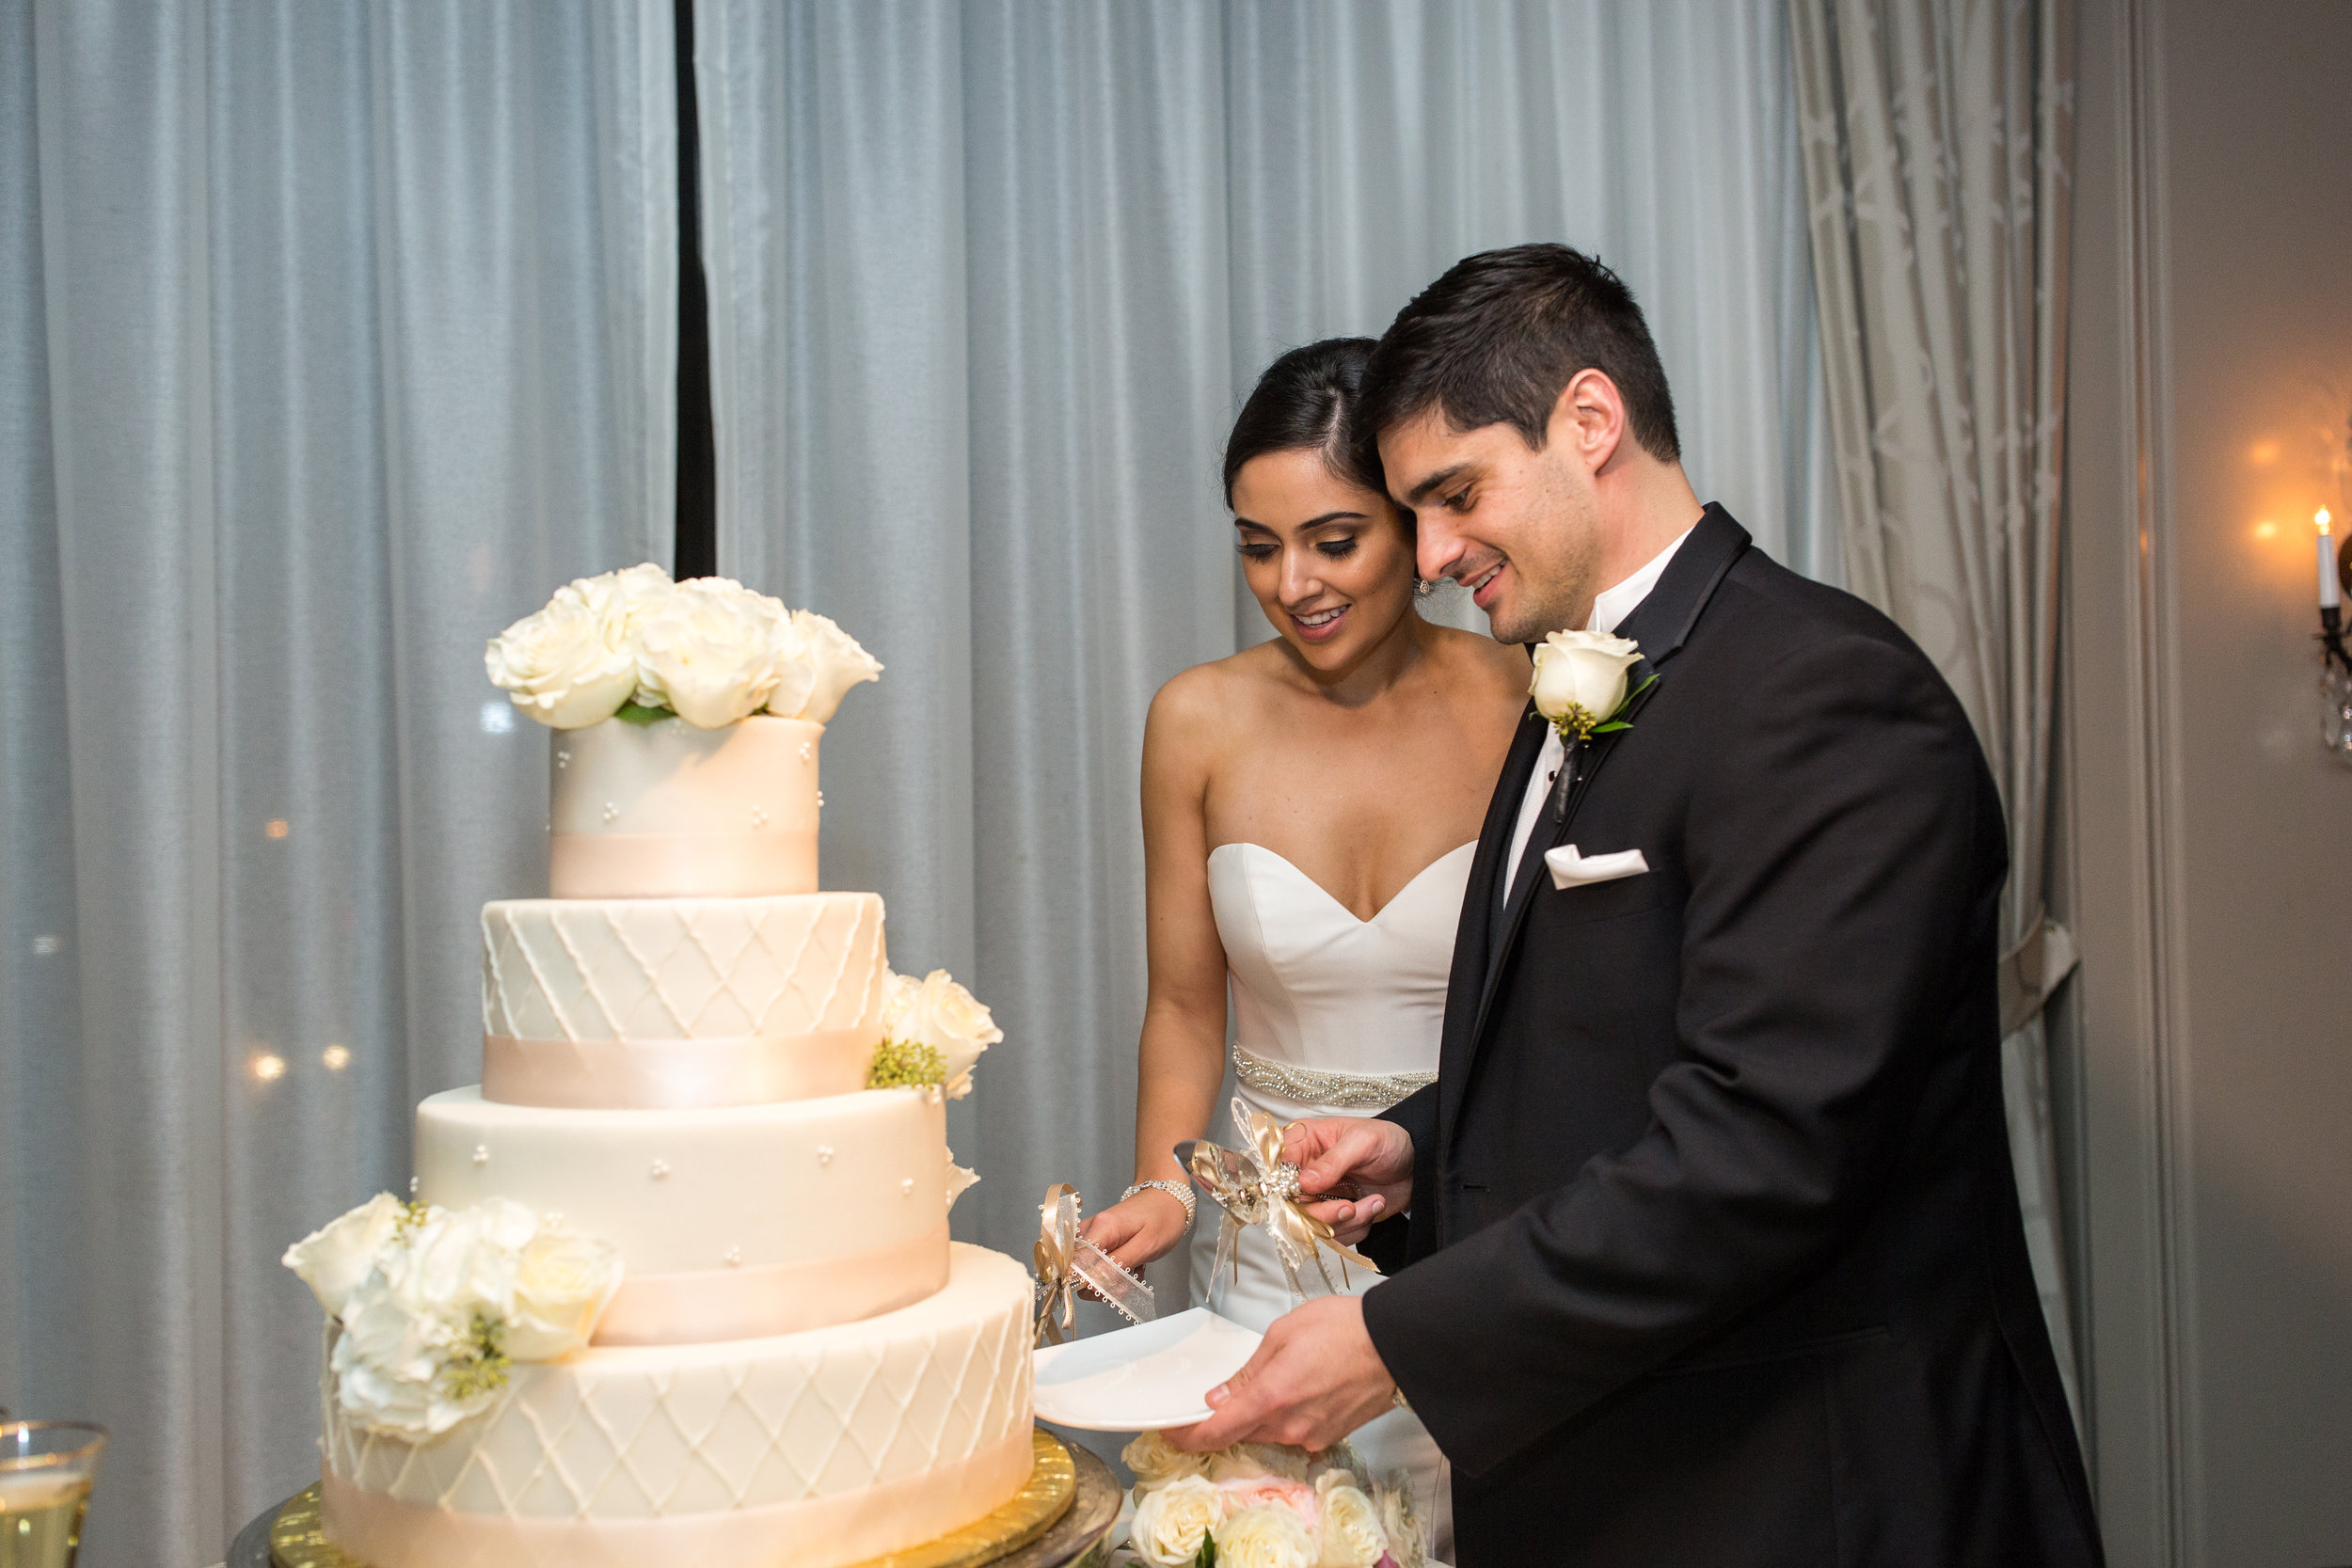 Classic wedding cake with a flower topper, Hotel Zaza